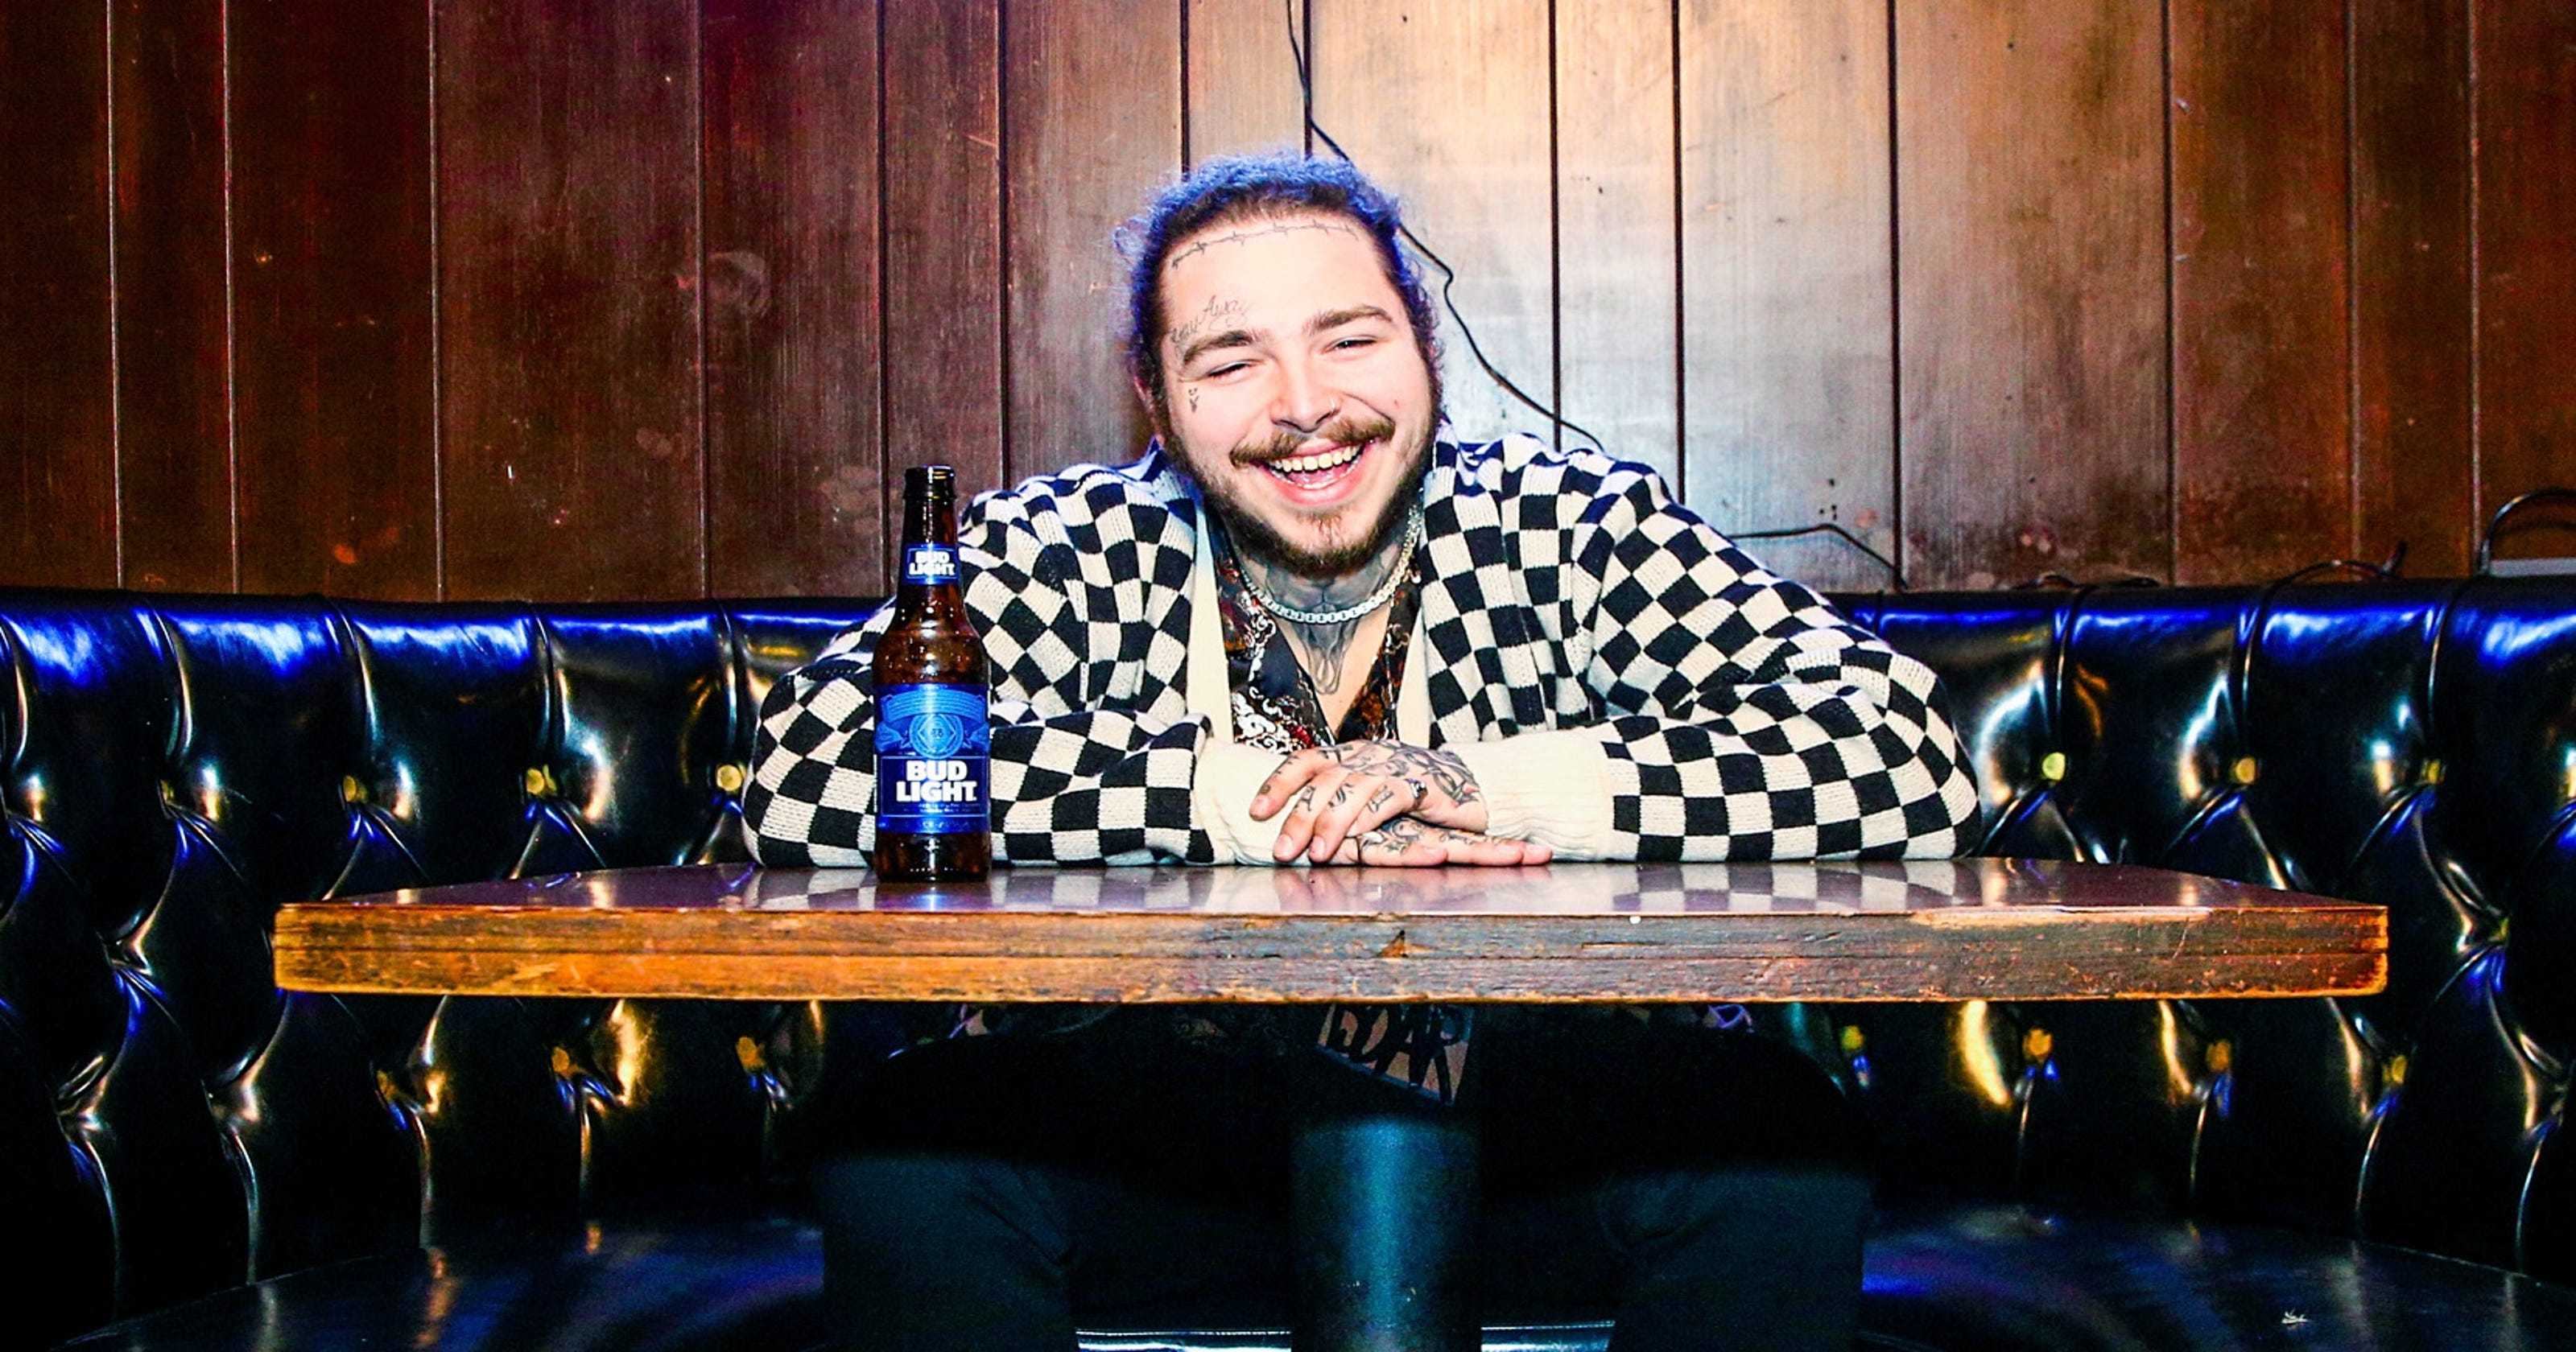 Post Malone to play Nashville 'dive bar' concert